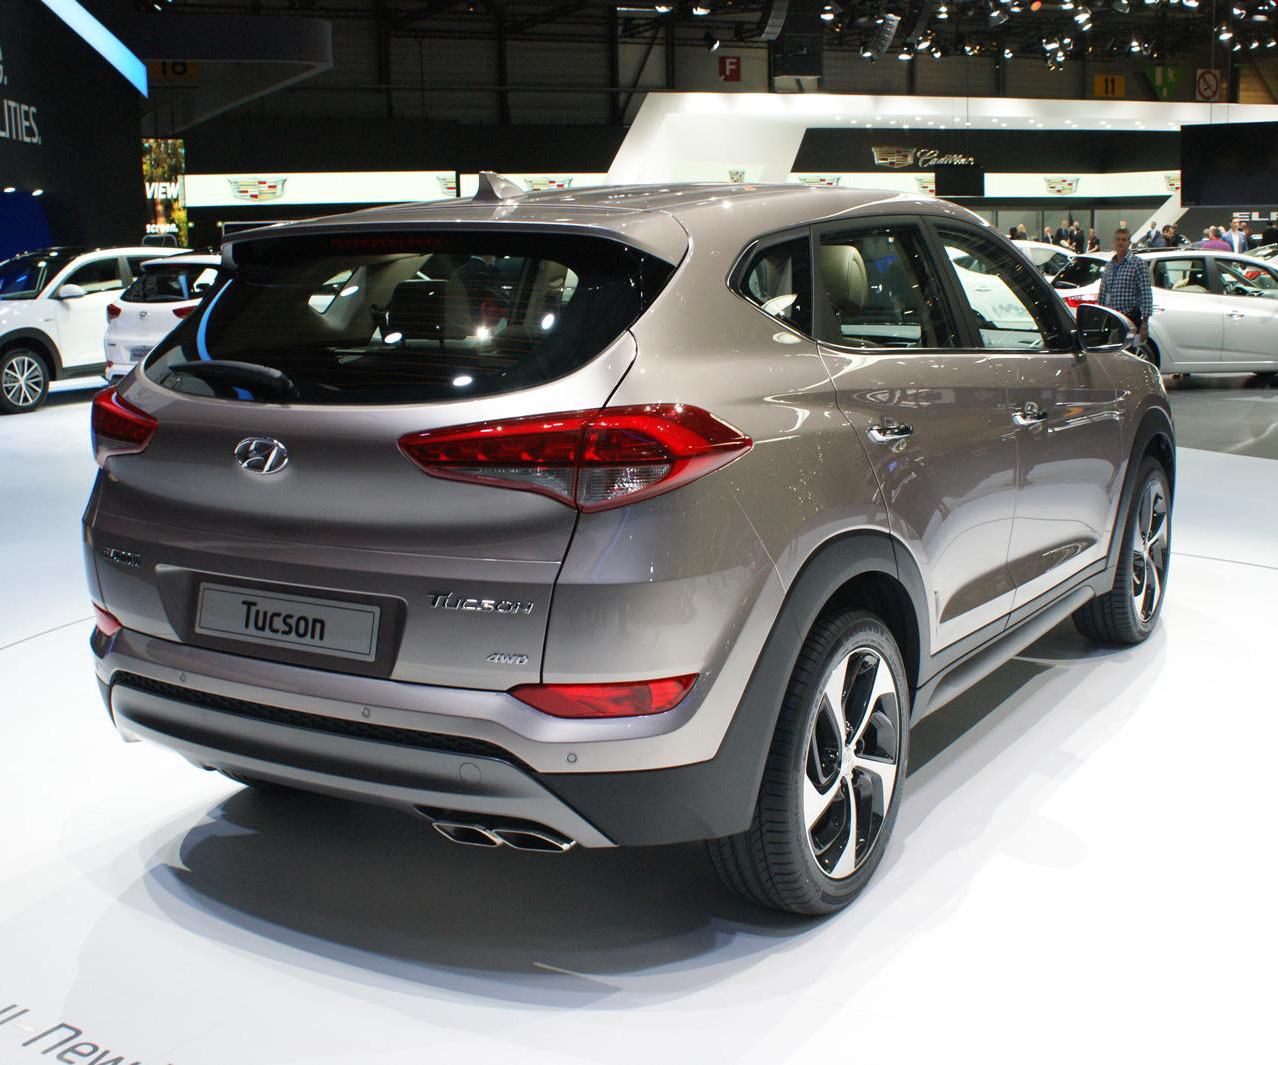 hyundai tucson launched in india starting price of rs lakh specs features. Black Bedroom Furniture Sets. Home Design Ideas